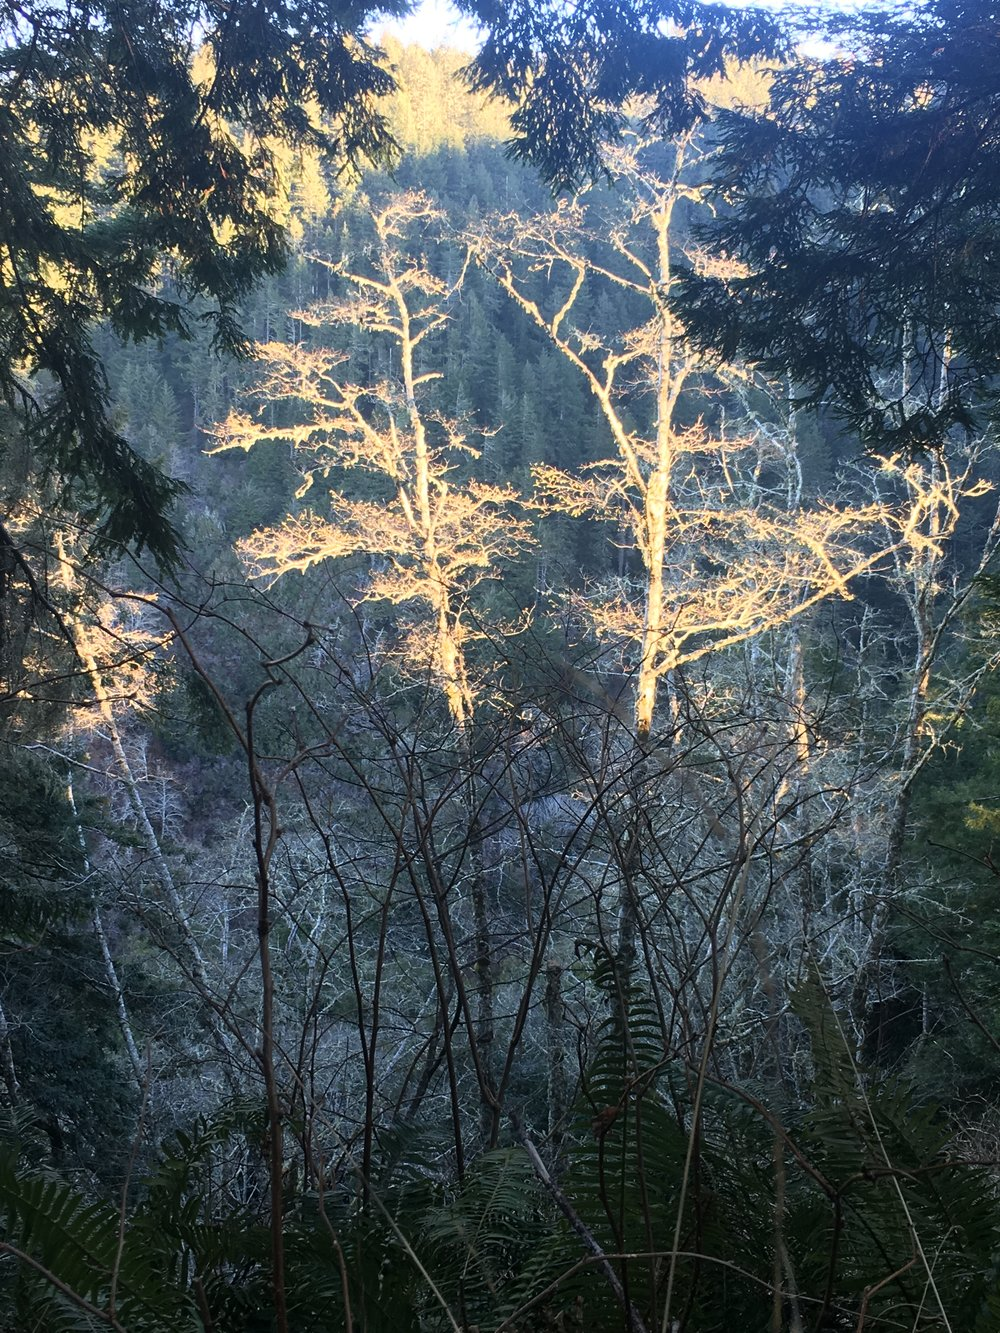 sunrise hits the ravine below Last Chance trail